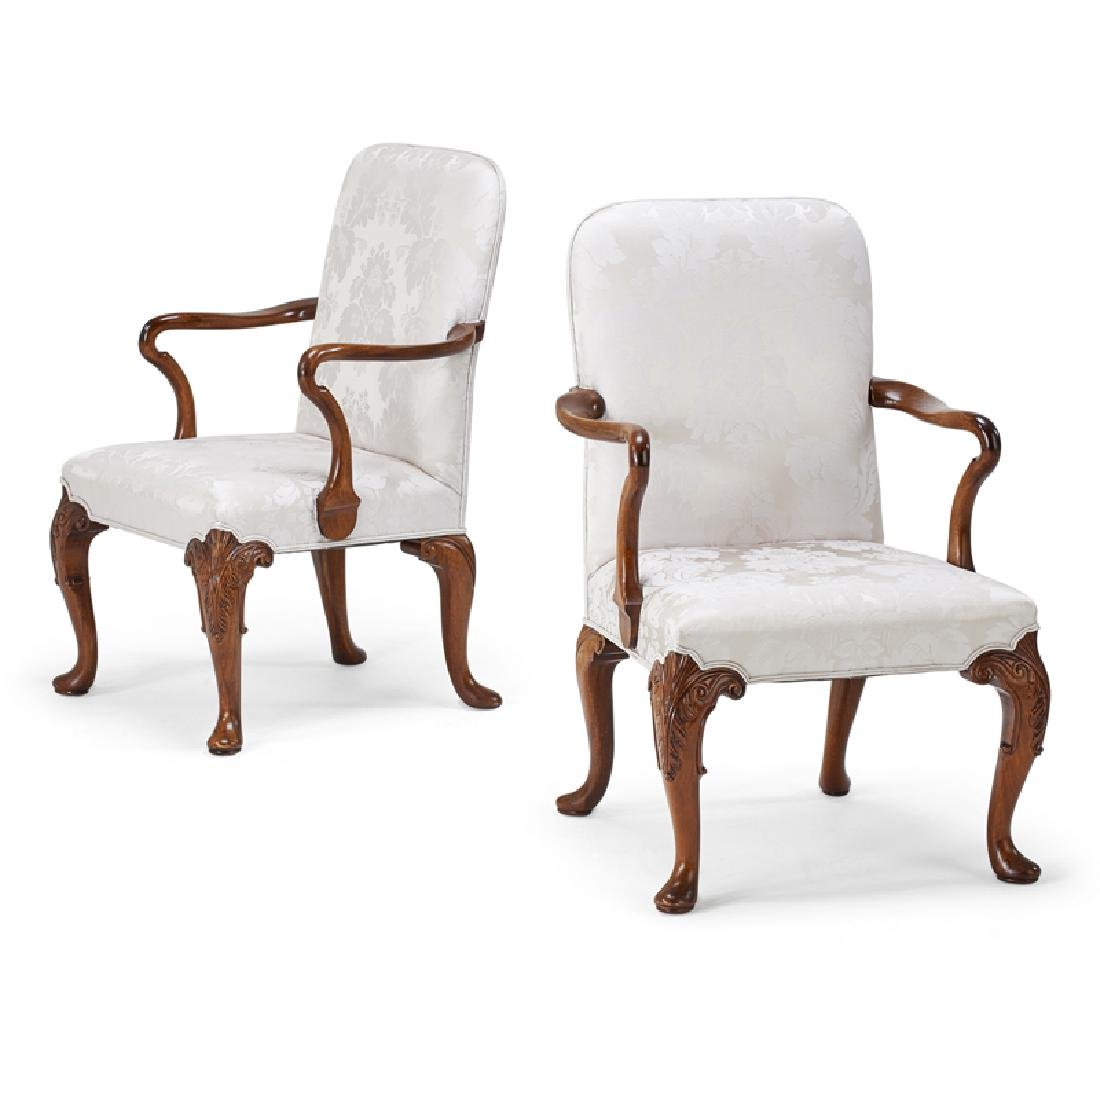 PAIR OF GEORGE II STYLE ARMCHAIRS